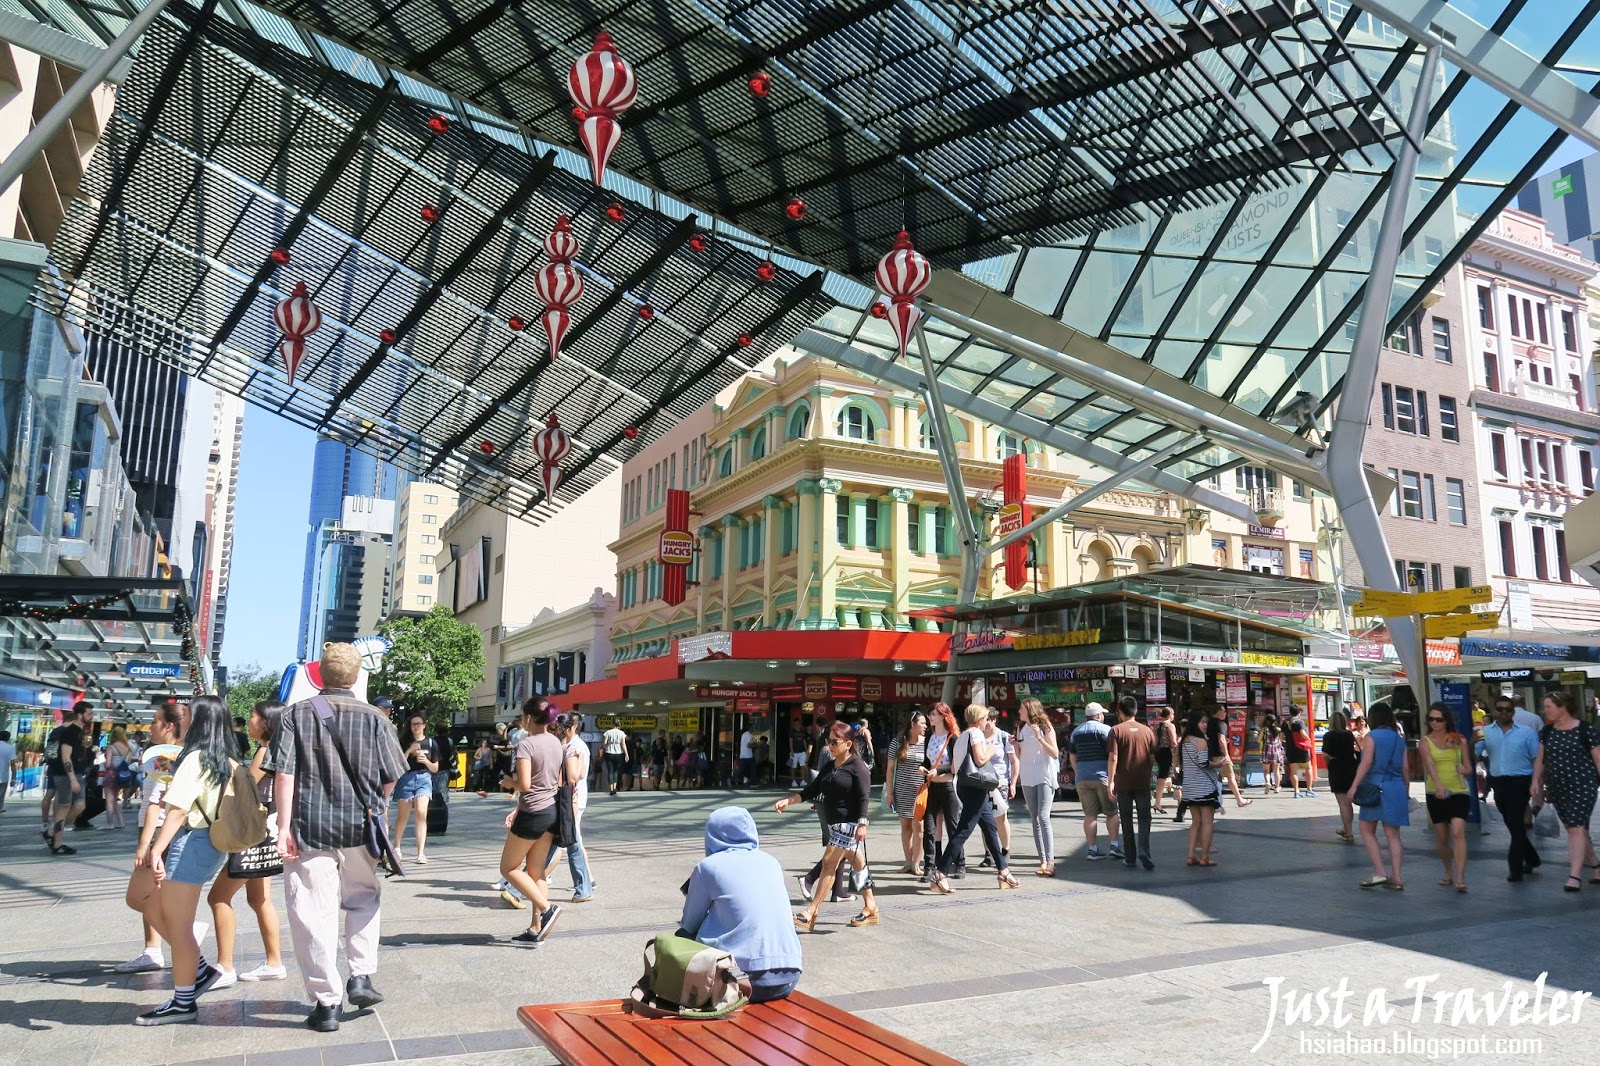 布里斯本-布里斯本景點-推薦-皇后街-旅遊-自由行-Brisbane-Attraction-Queen-Street-Shopping-Mall-Tourist-destination